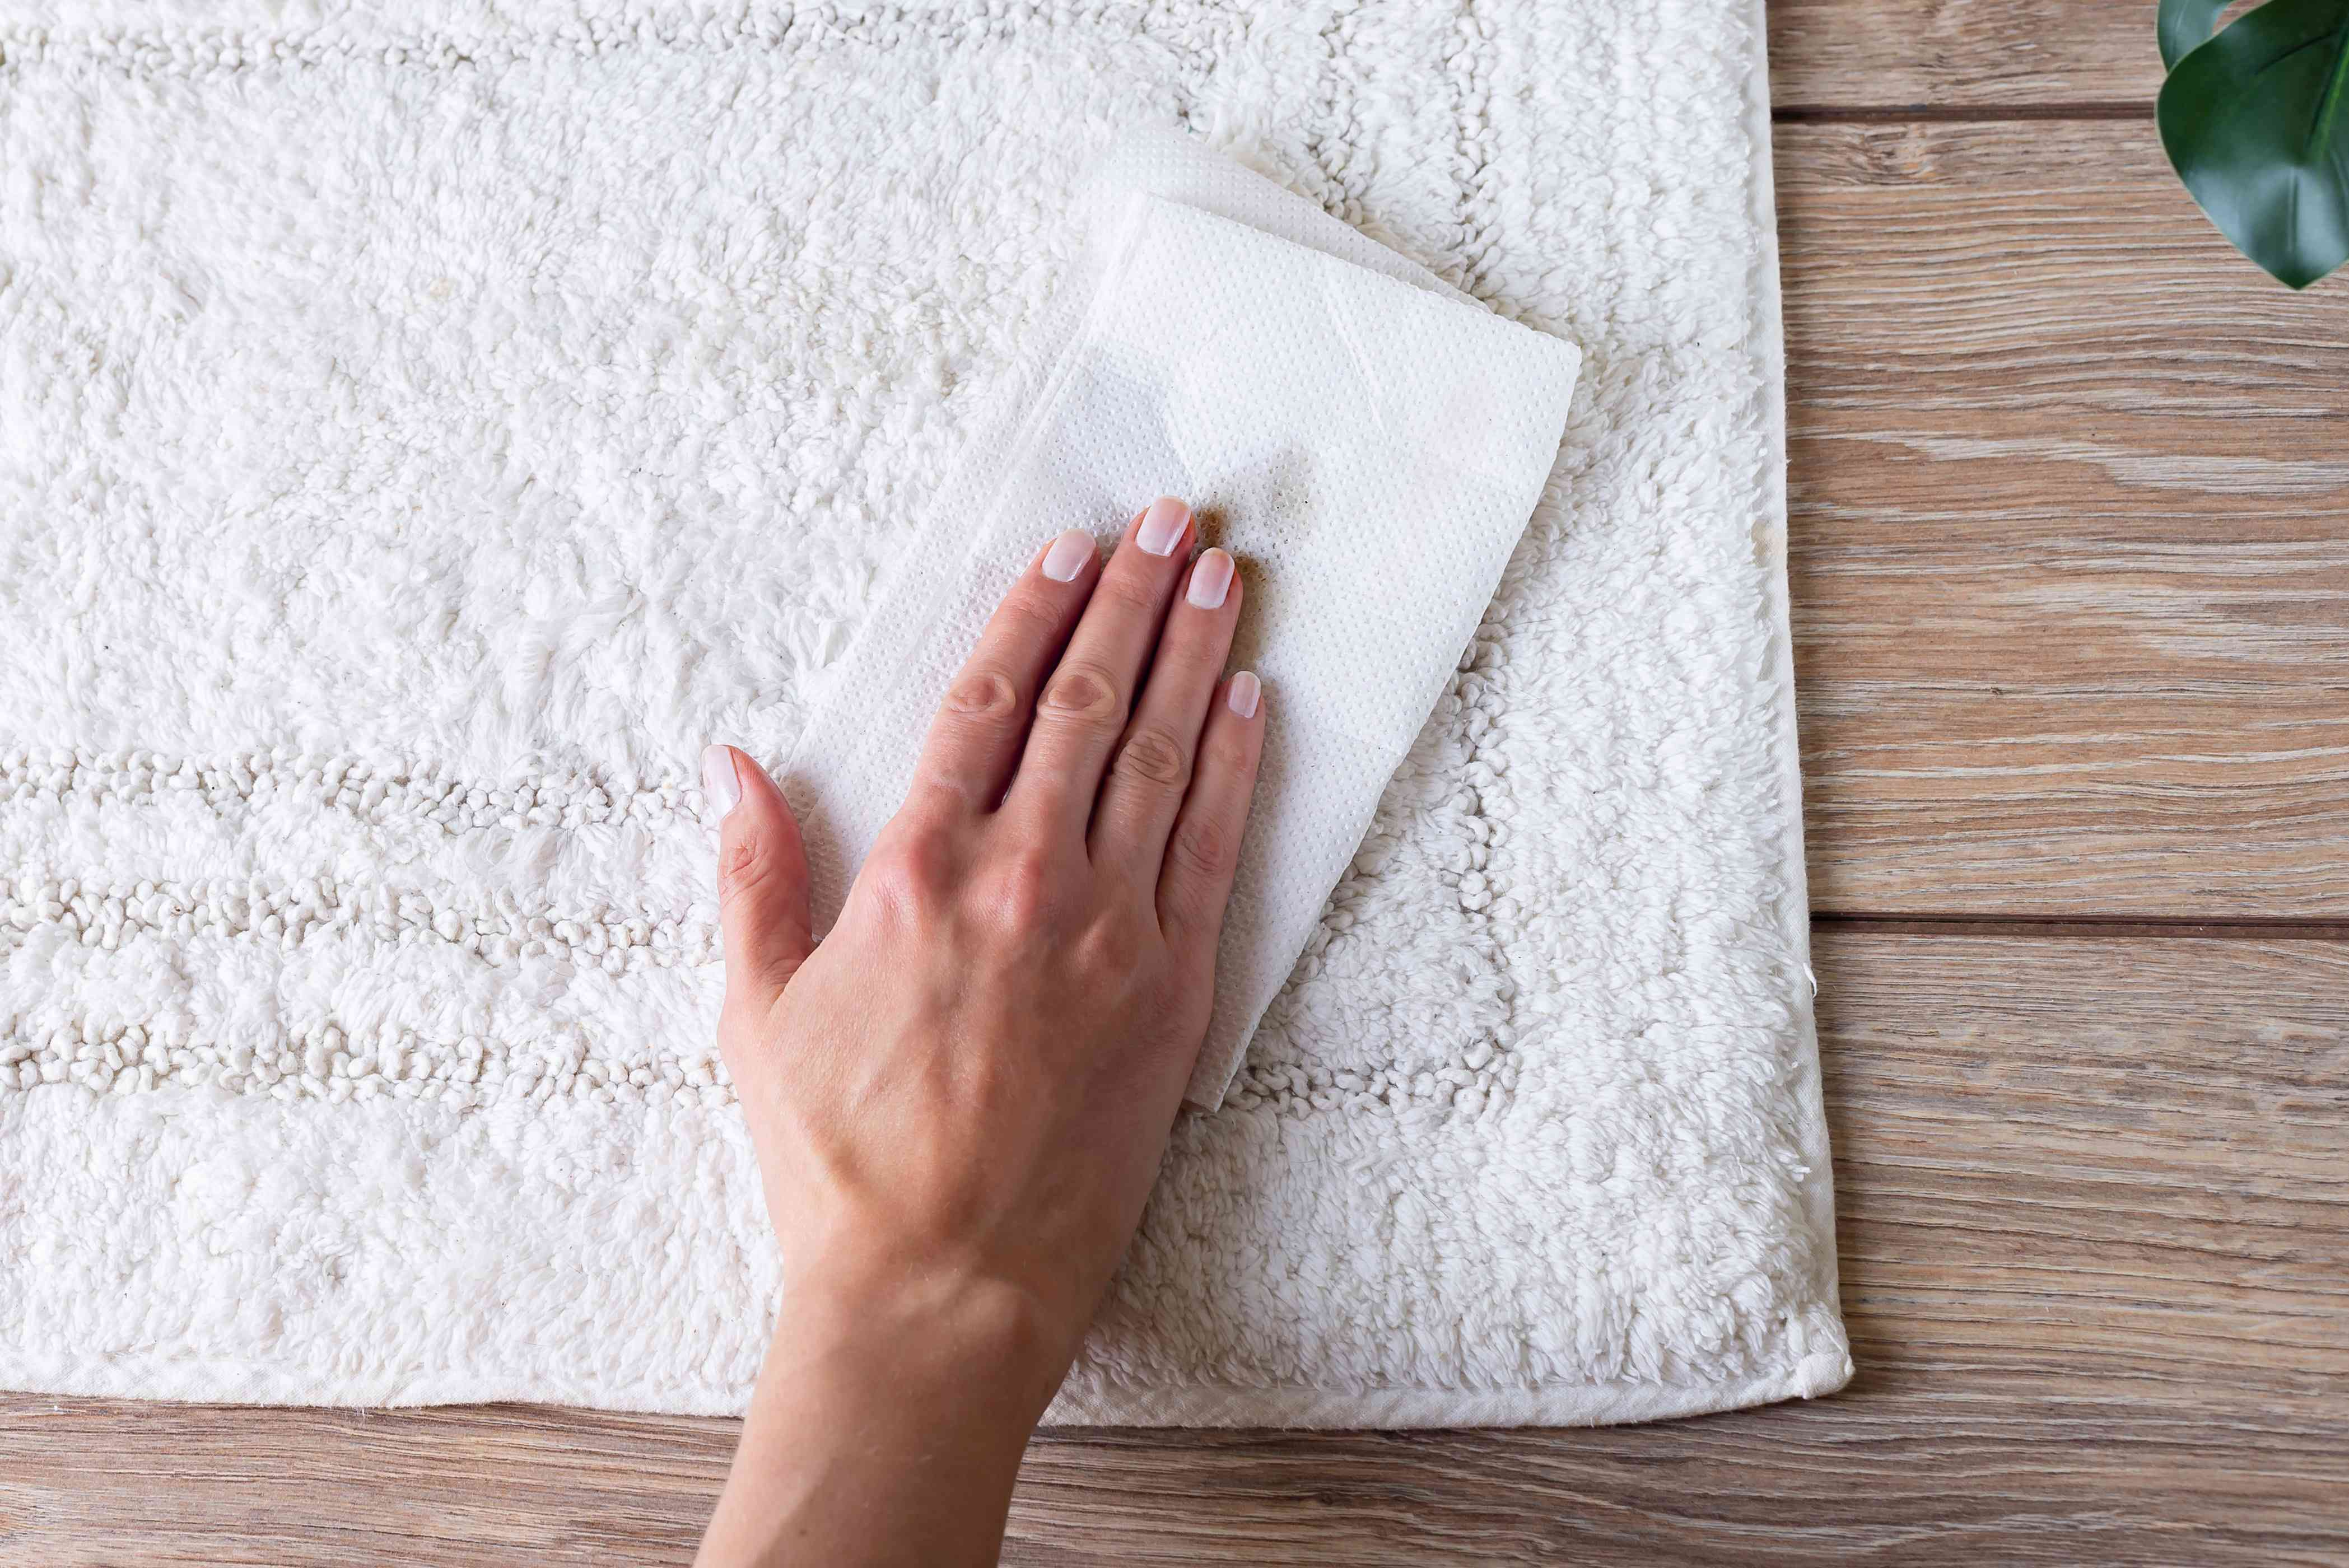 blotting the stain dry